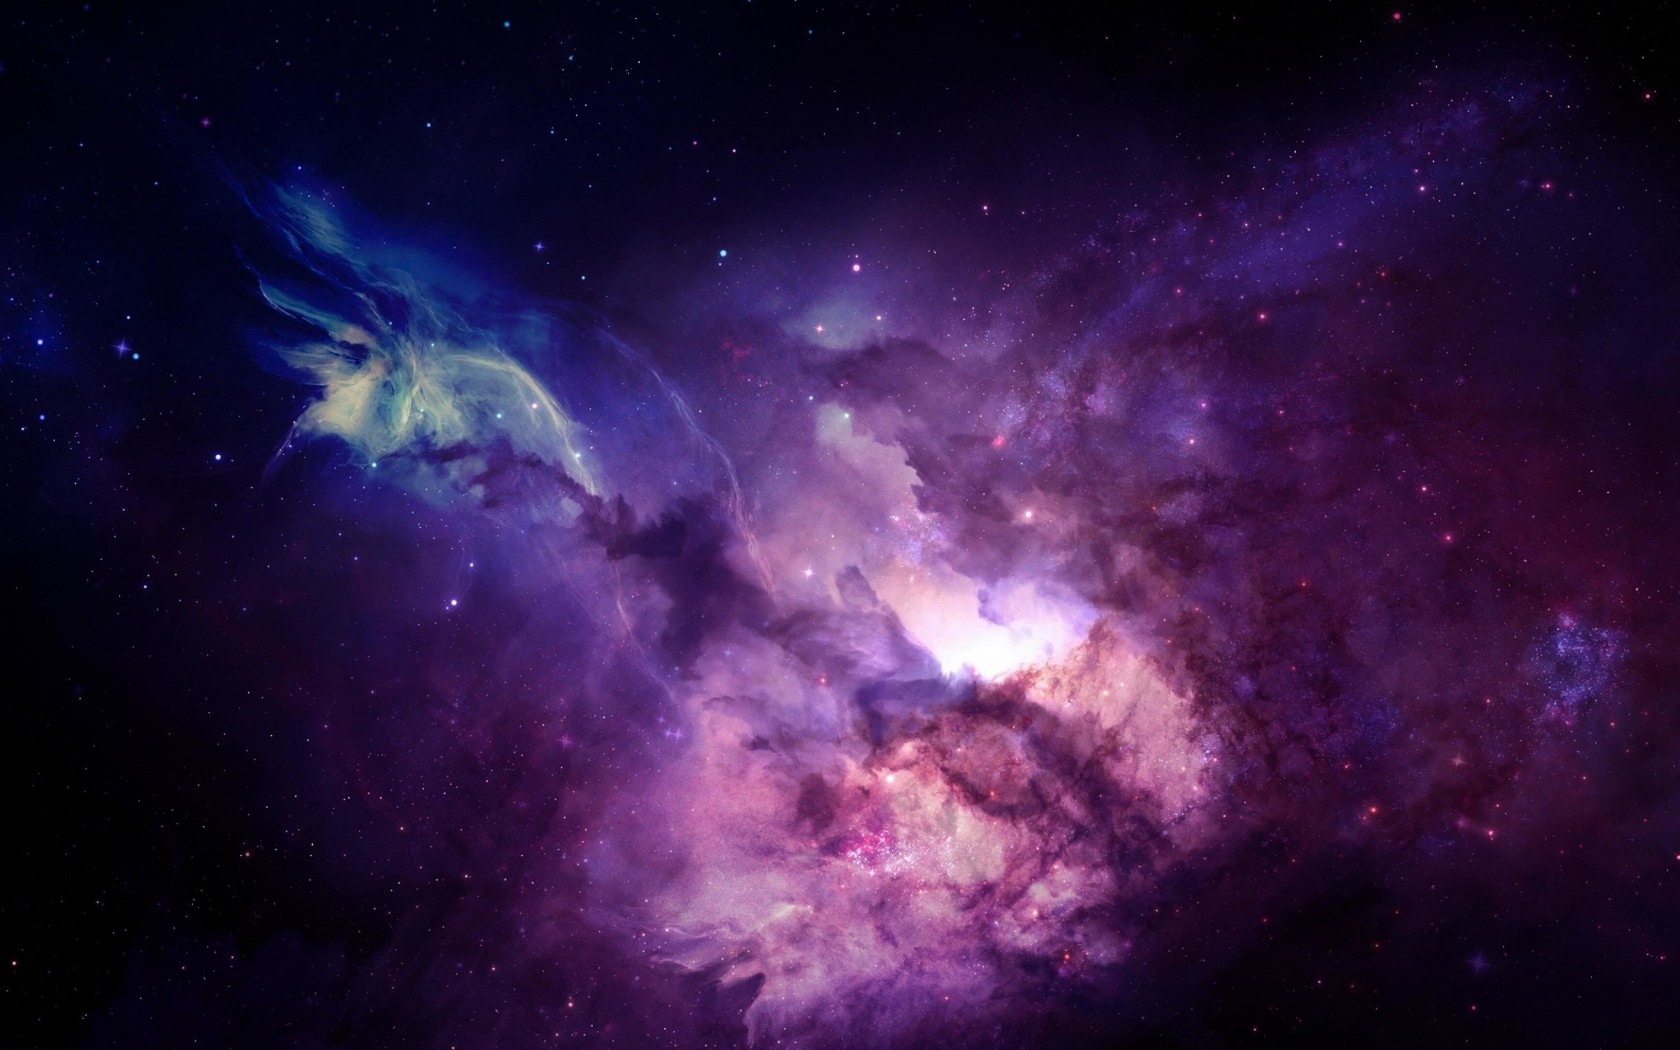 Purple Nebula Wallpaper for Desktop 1680x1050